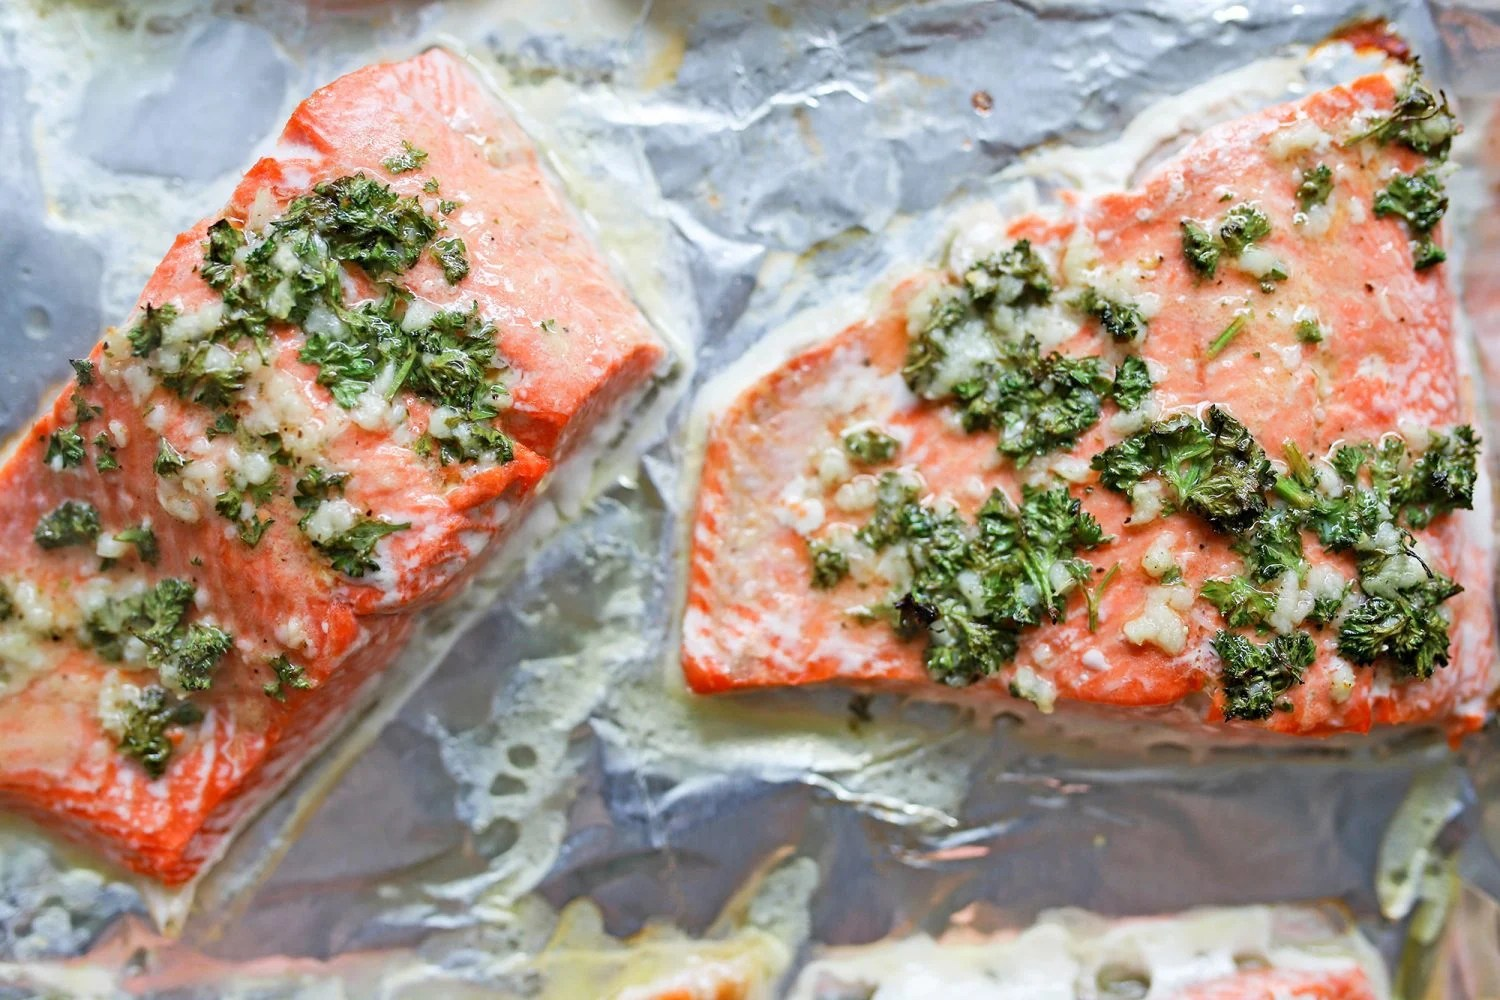 cooked salmon fillets on foil lined baking sheet